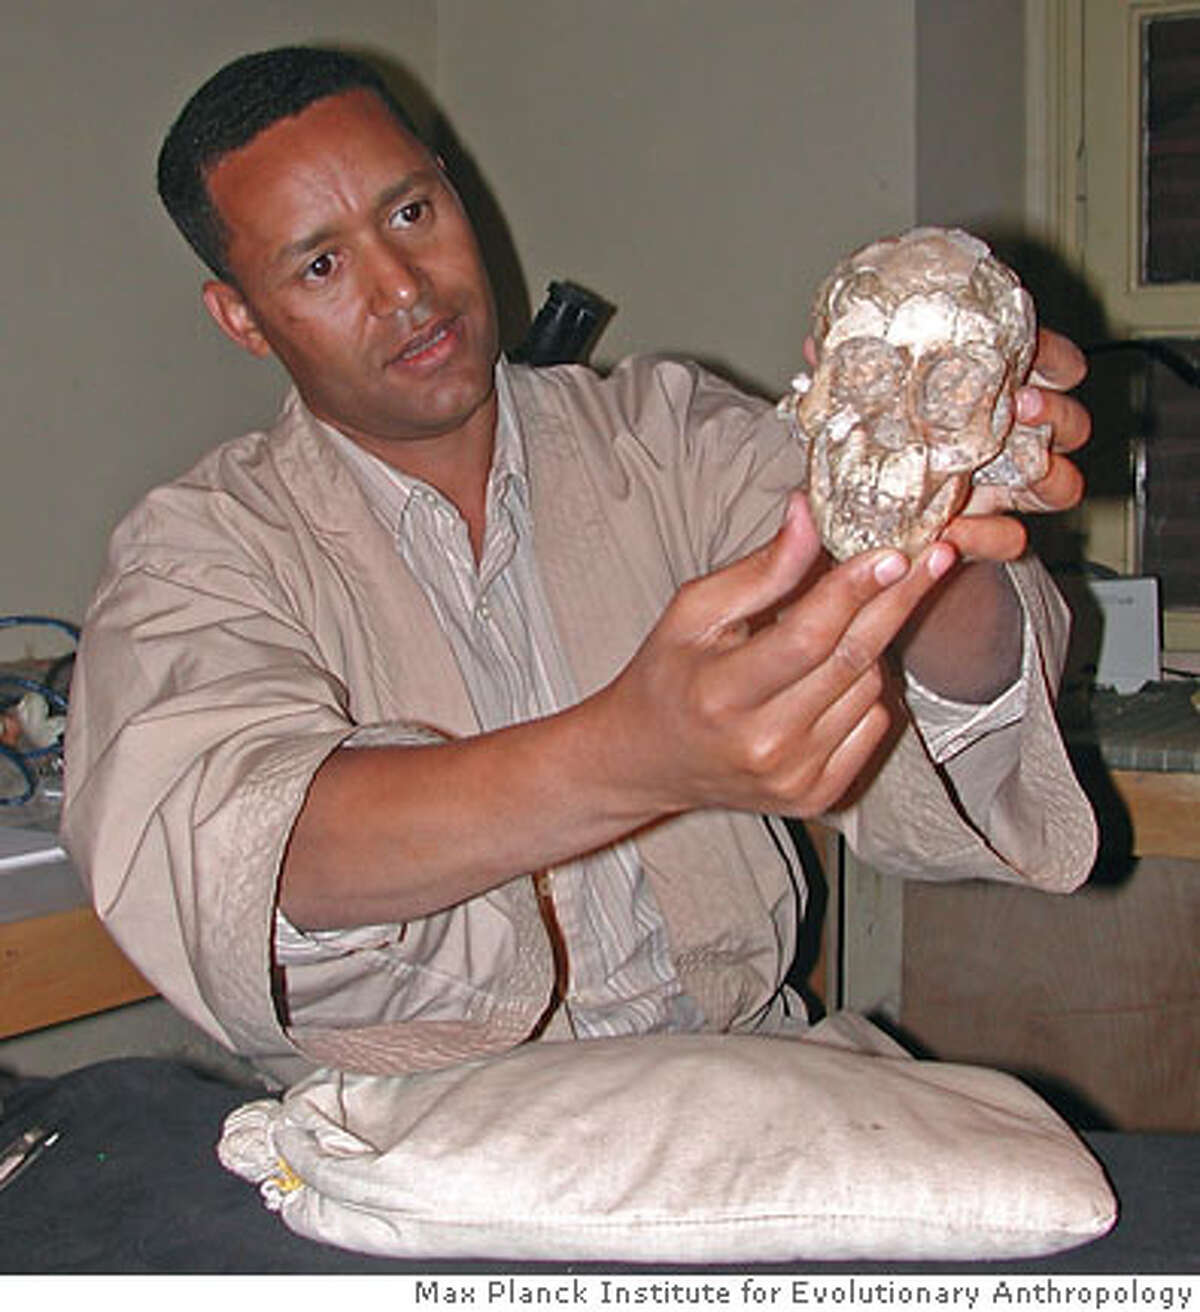 ** IMAGE EMBARGOED UNTIL SEPT. 20 AT 1 PM EDT **This undated photo provided by the Max Planck Institute for Evolutionary Anthropology, shows Dr. Zeresenay Alemseged holding the skull of a three-year-old Australopithecus afarensis at the National Museum of Ethiopia in Addis Ababa, Ethiopia. Scientists have discovered the remarkably complete skeleton of the 3-year-old female from the ape-man species represented by